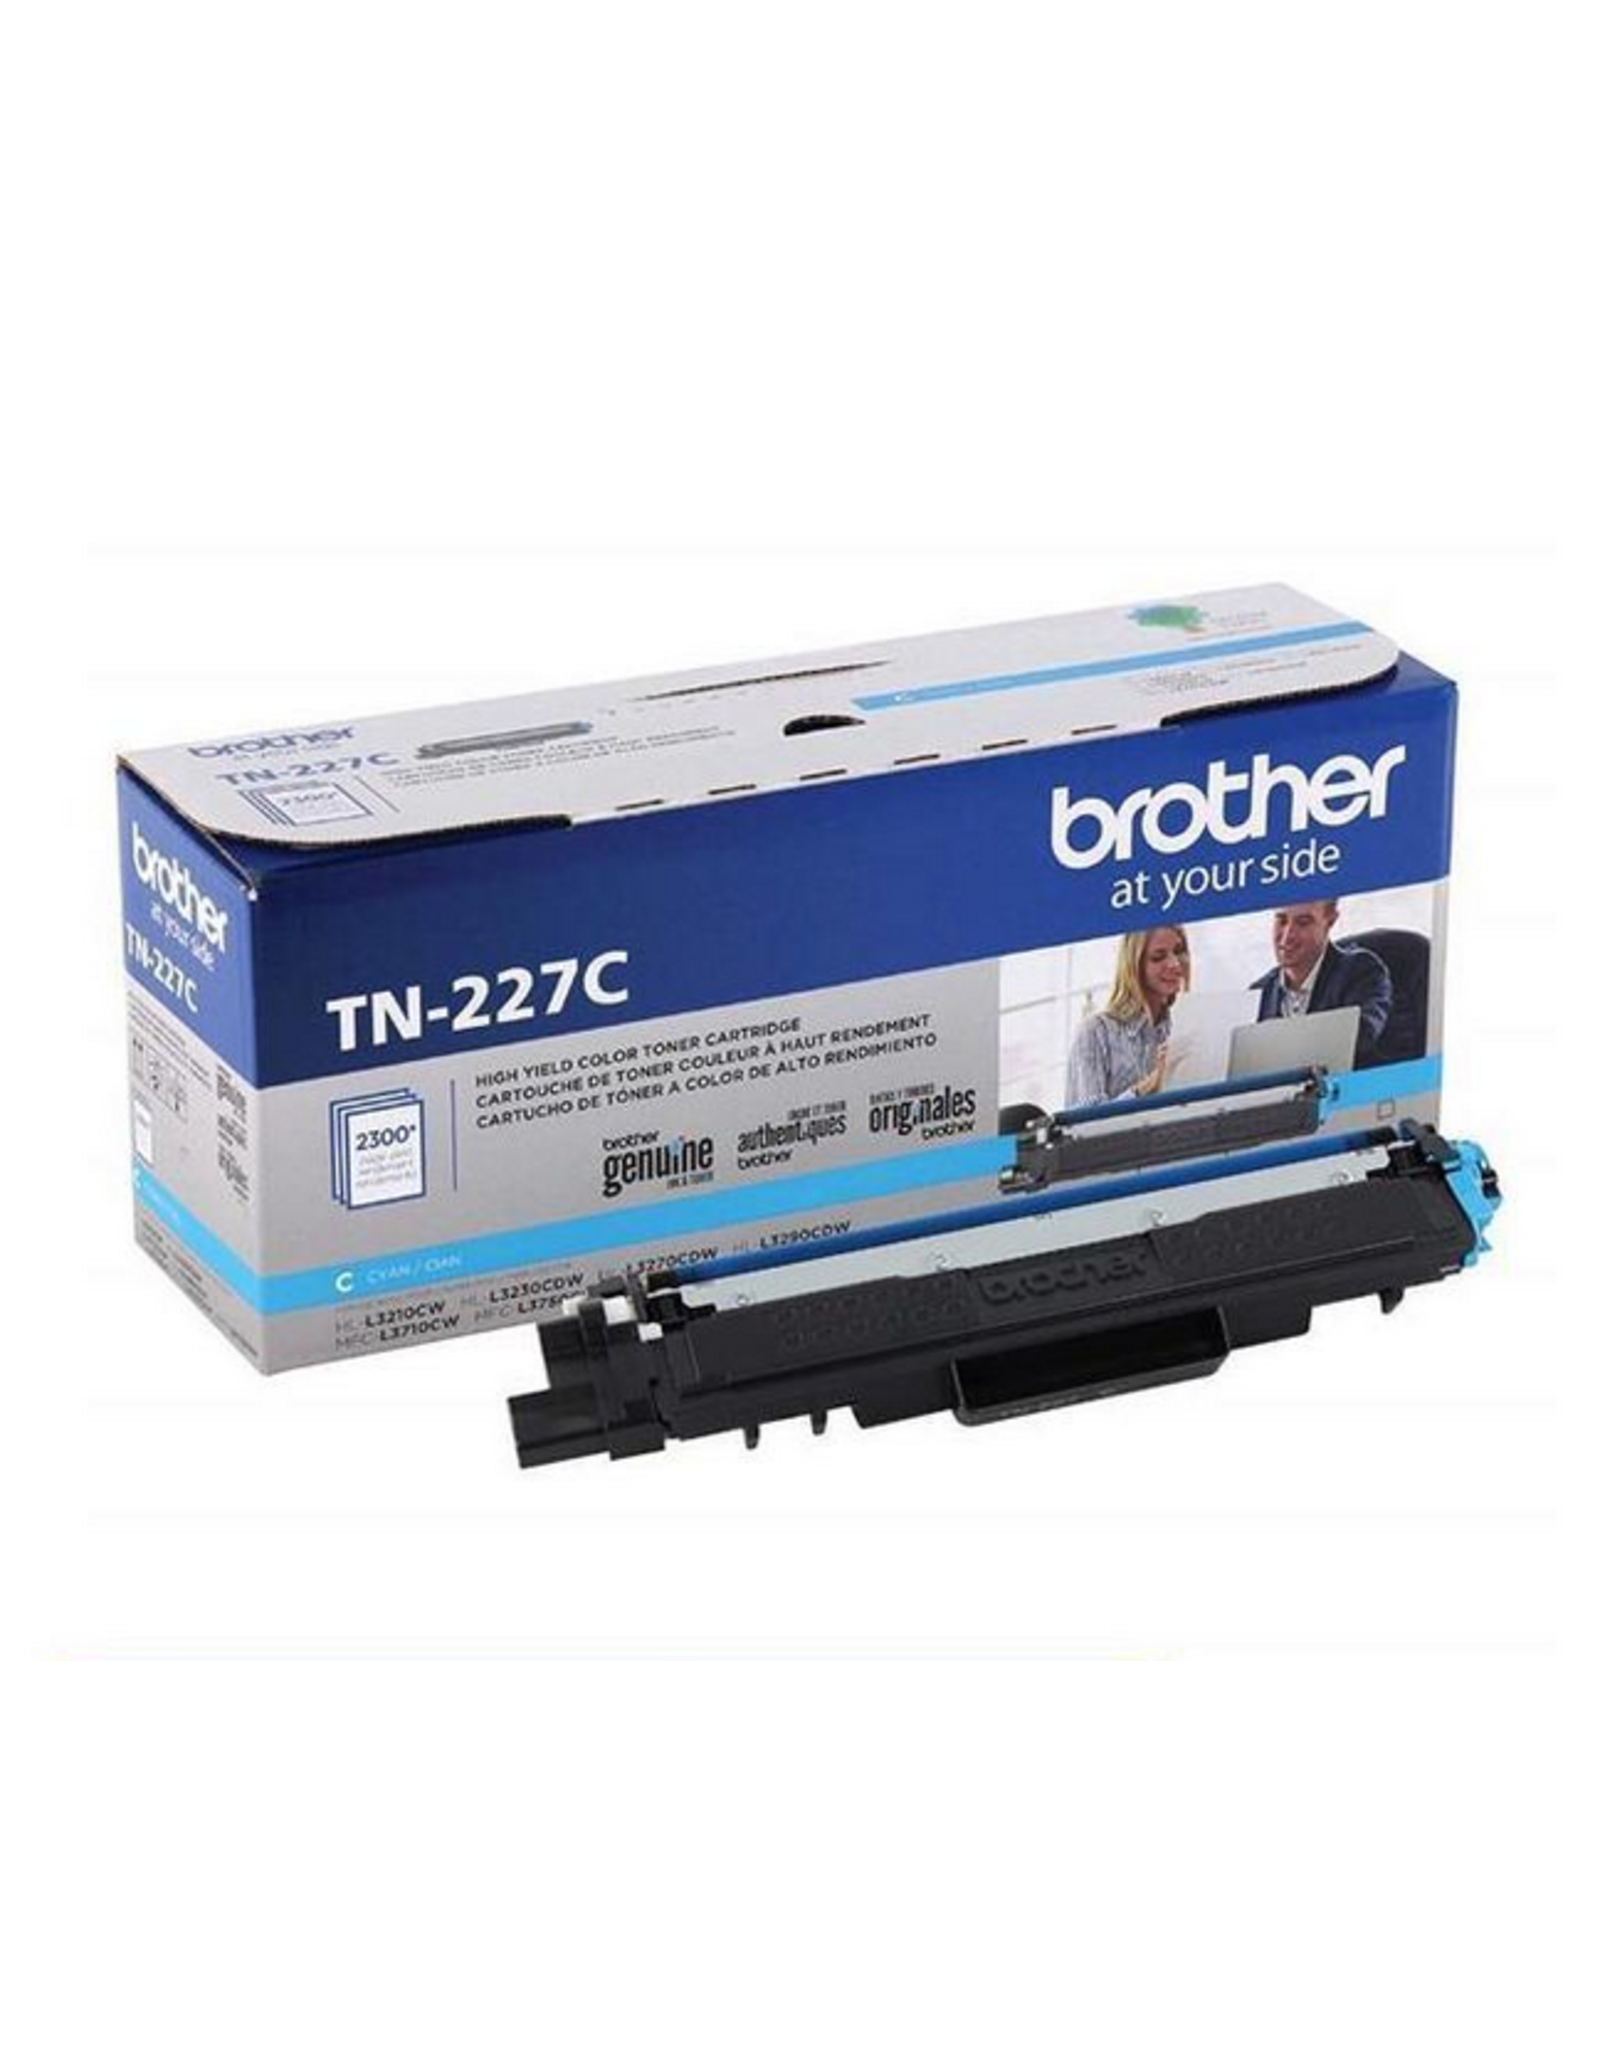 Brother BROTHER - LASER TONER-BROTHER CYAN HIGH YIELD - TN227C